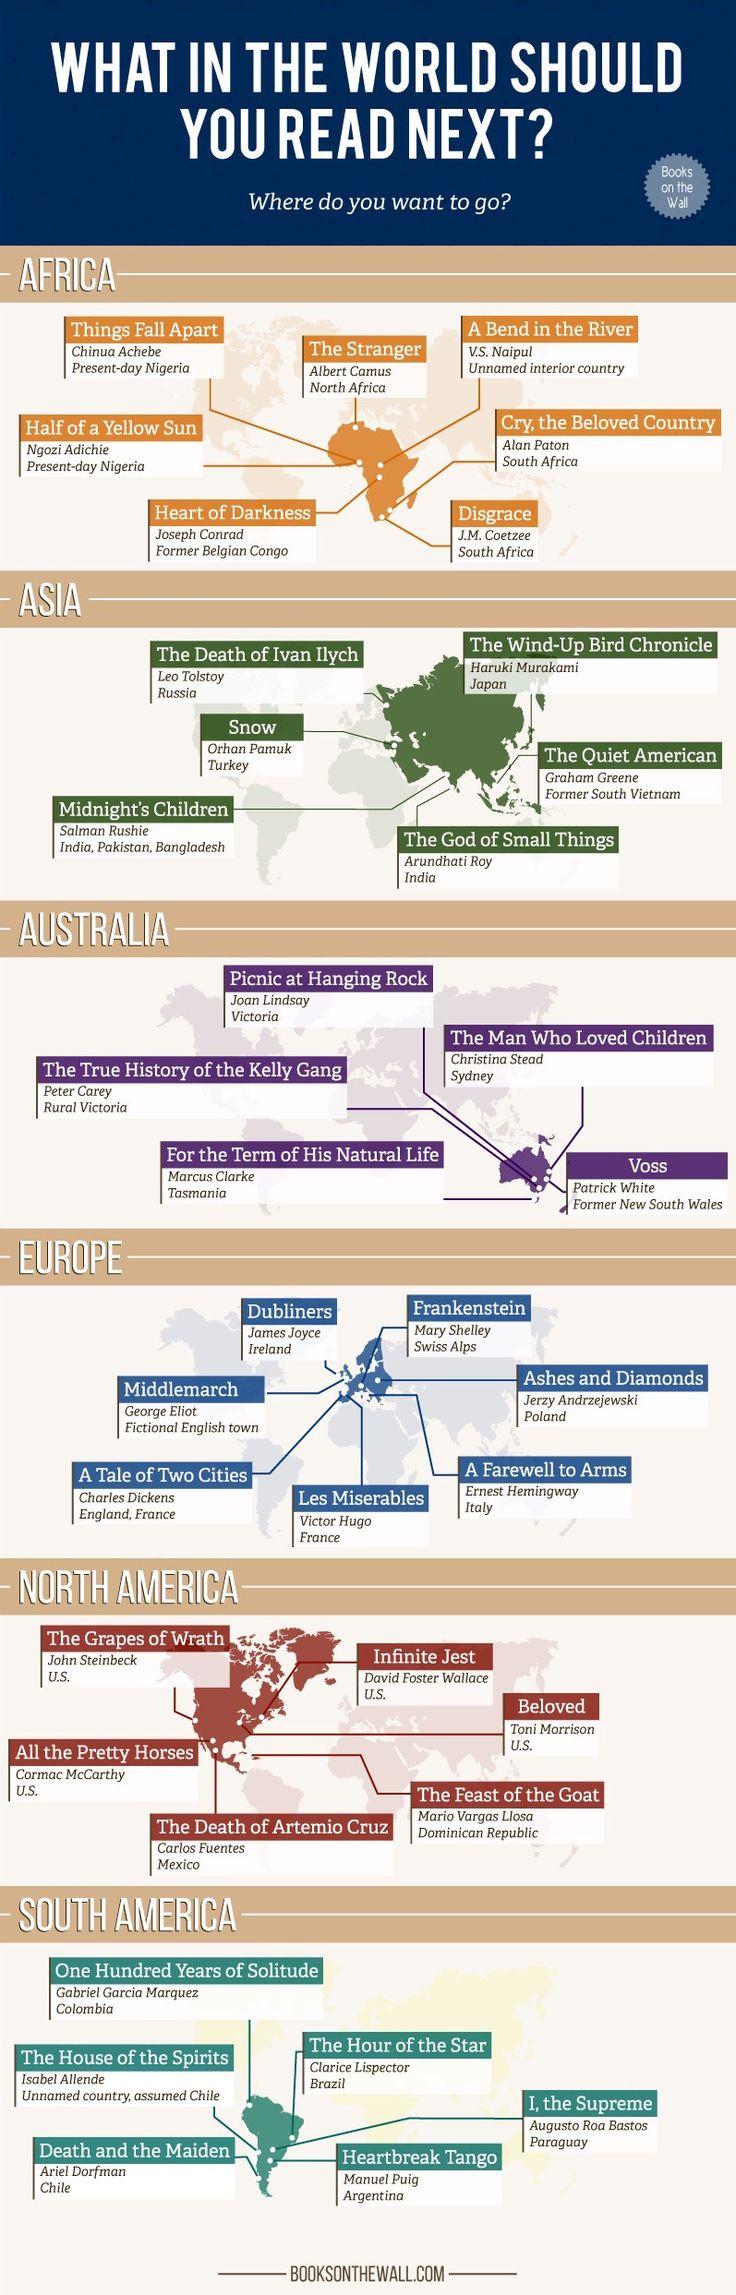 If you are looking for books that are set in different countries around the world, you should check out the new infographic…